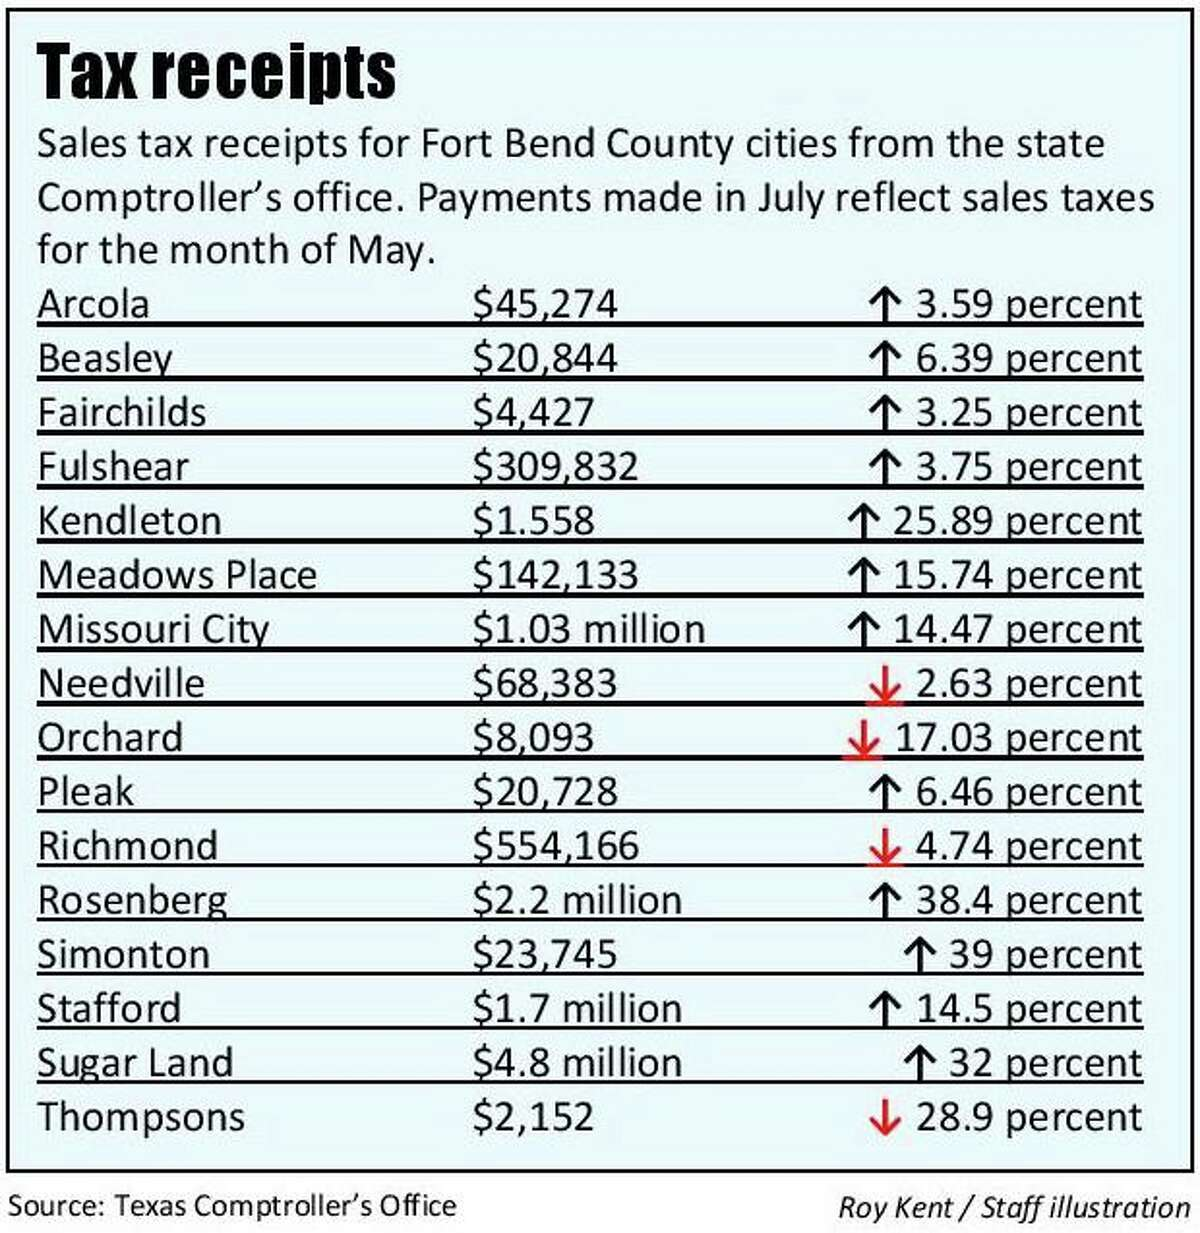 Sales tax receipts for Fort Bend County cities for the month of July 2021. Payments are made by the Texas Comptroller's Office.